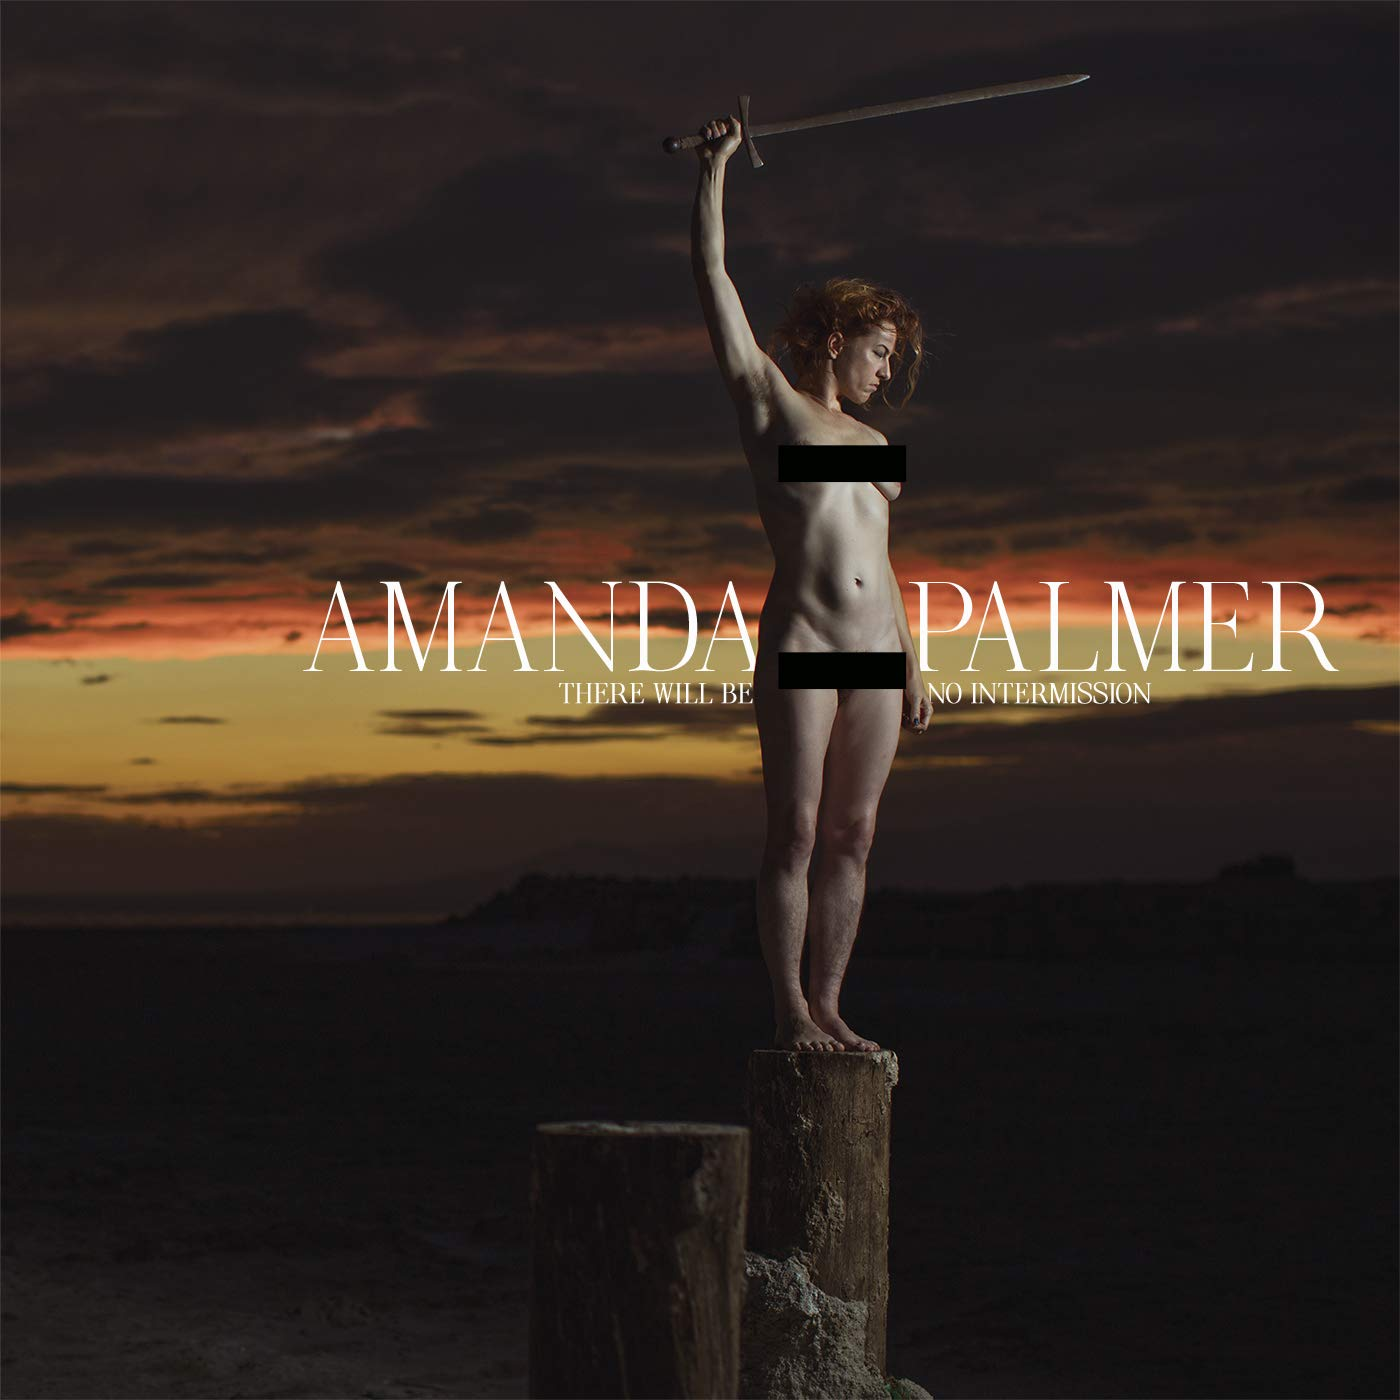 Amanda Palmer - There Will Be No Intermission [2LP] (Pink Vinyl, Breast Cancer charity release, limited to 500)